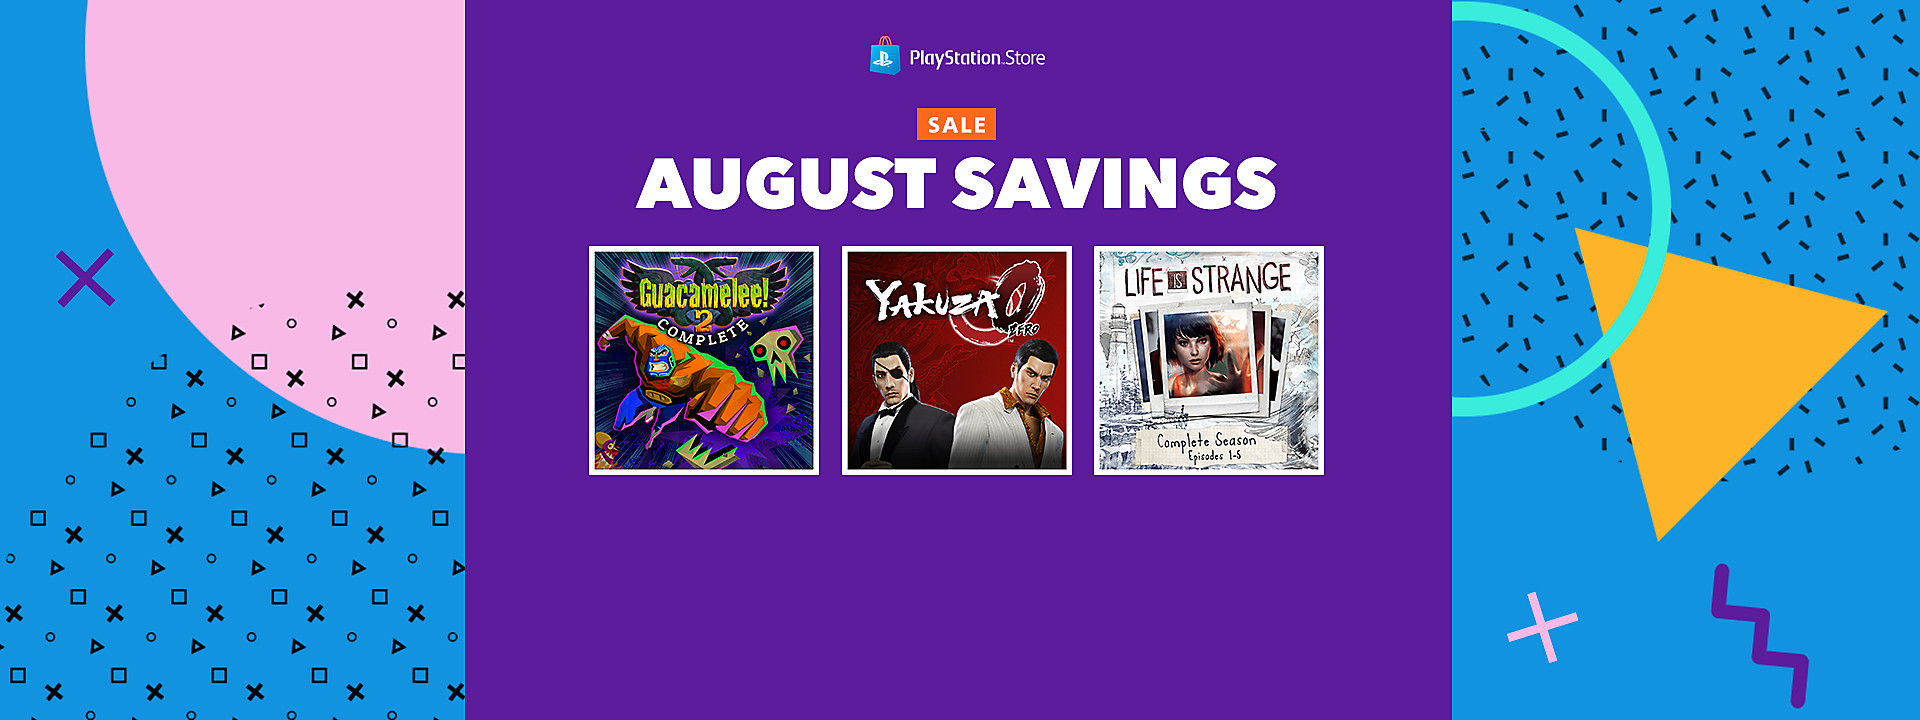 PlayStation Store August Savings Sale - August 20 - September 3